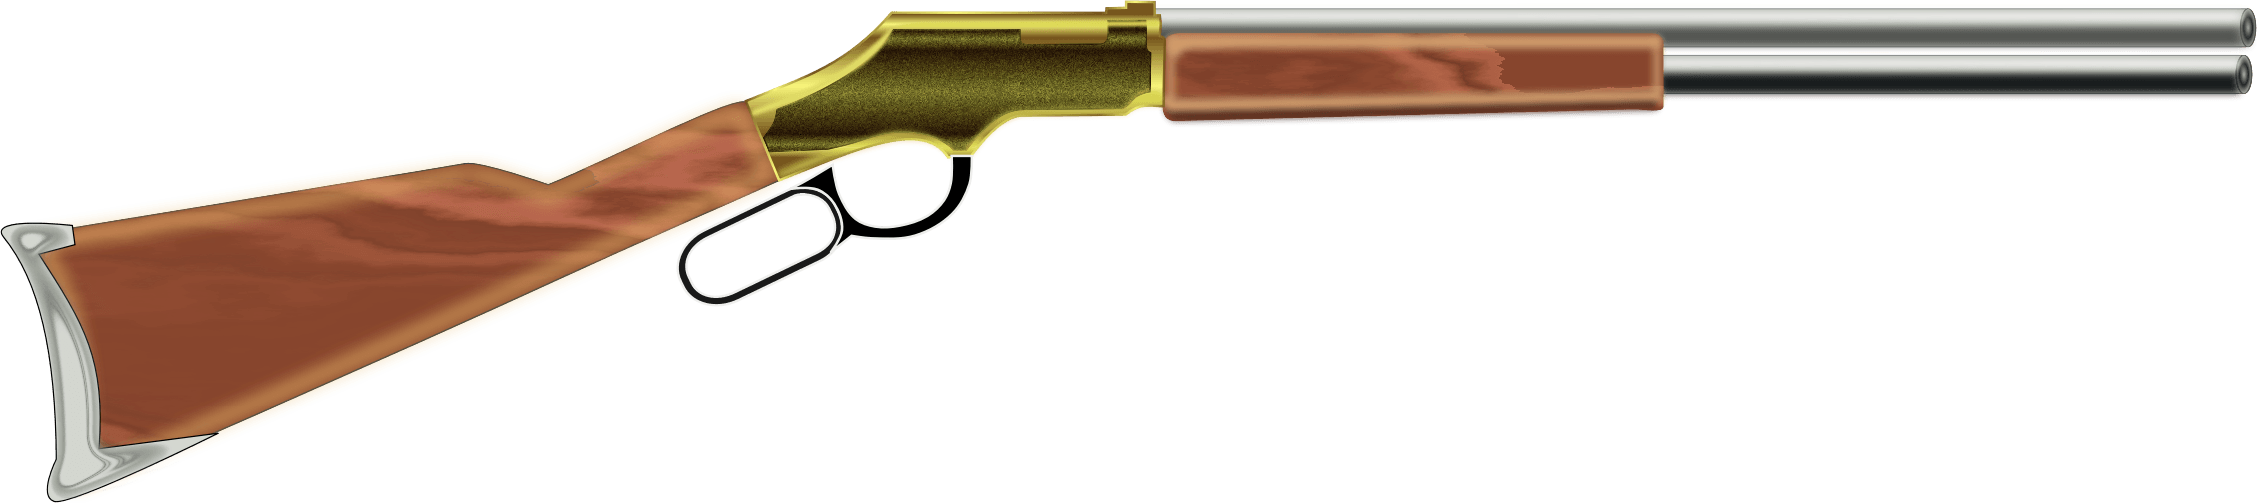 Firearms old west hanslodge. Clipart gun firearm